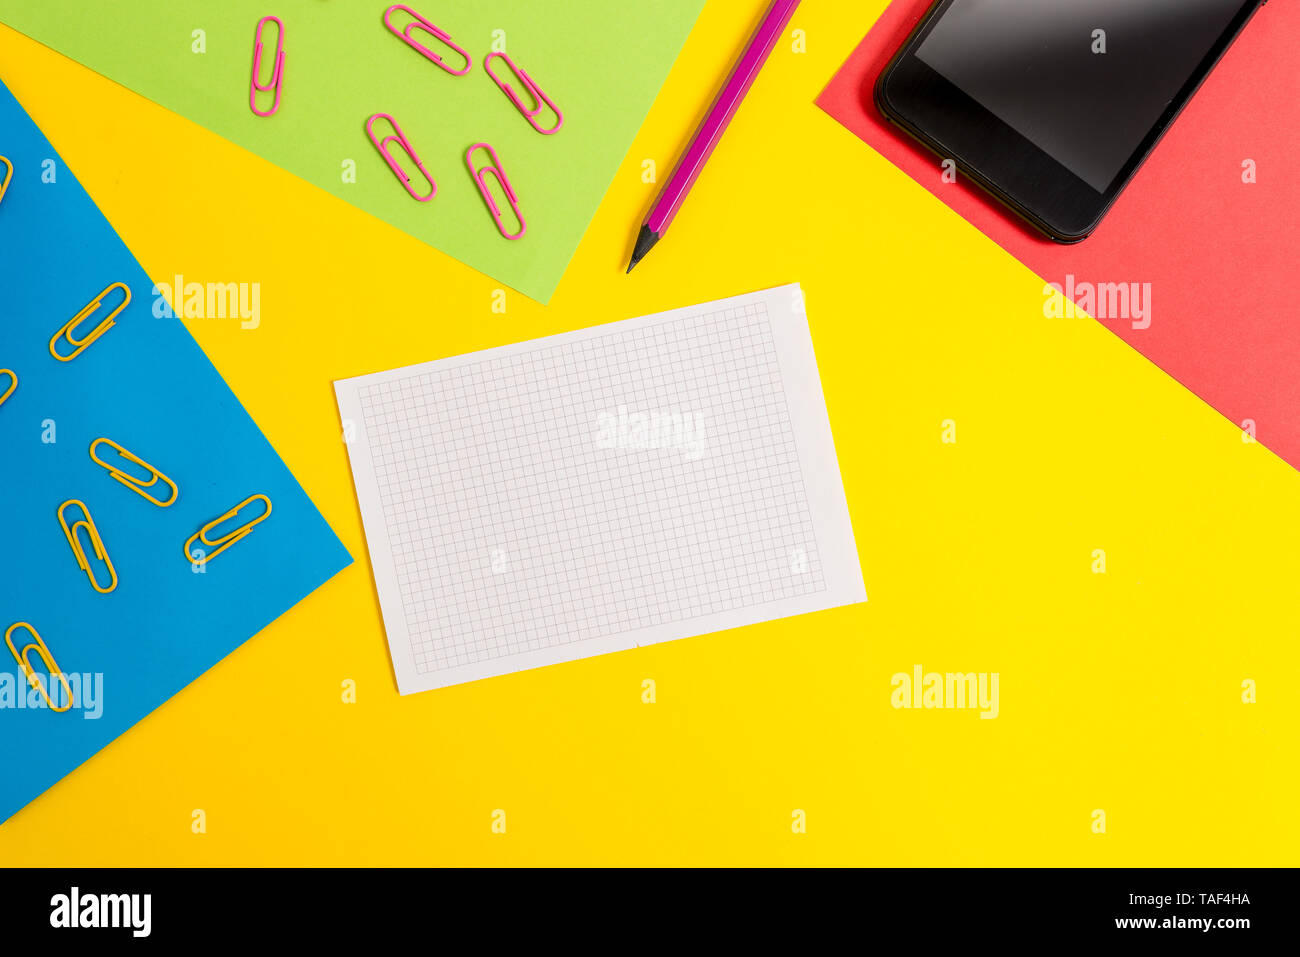 Paper sheets pencil clips smartphone squared notebook colored background - Stock Image